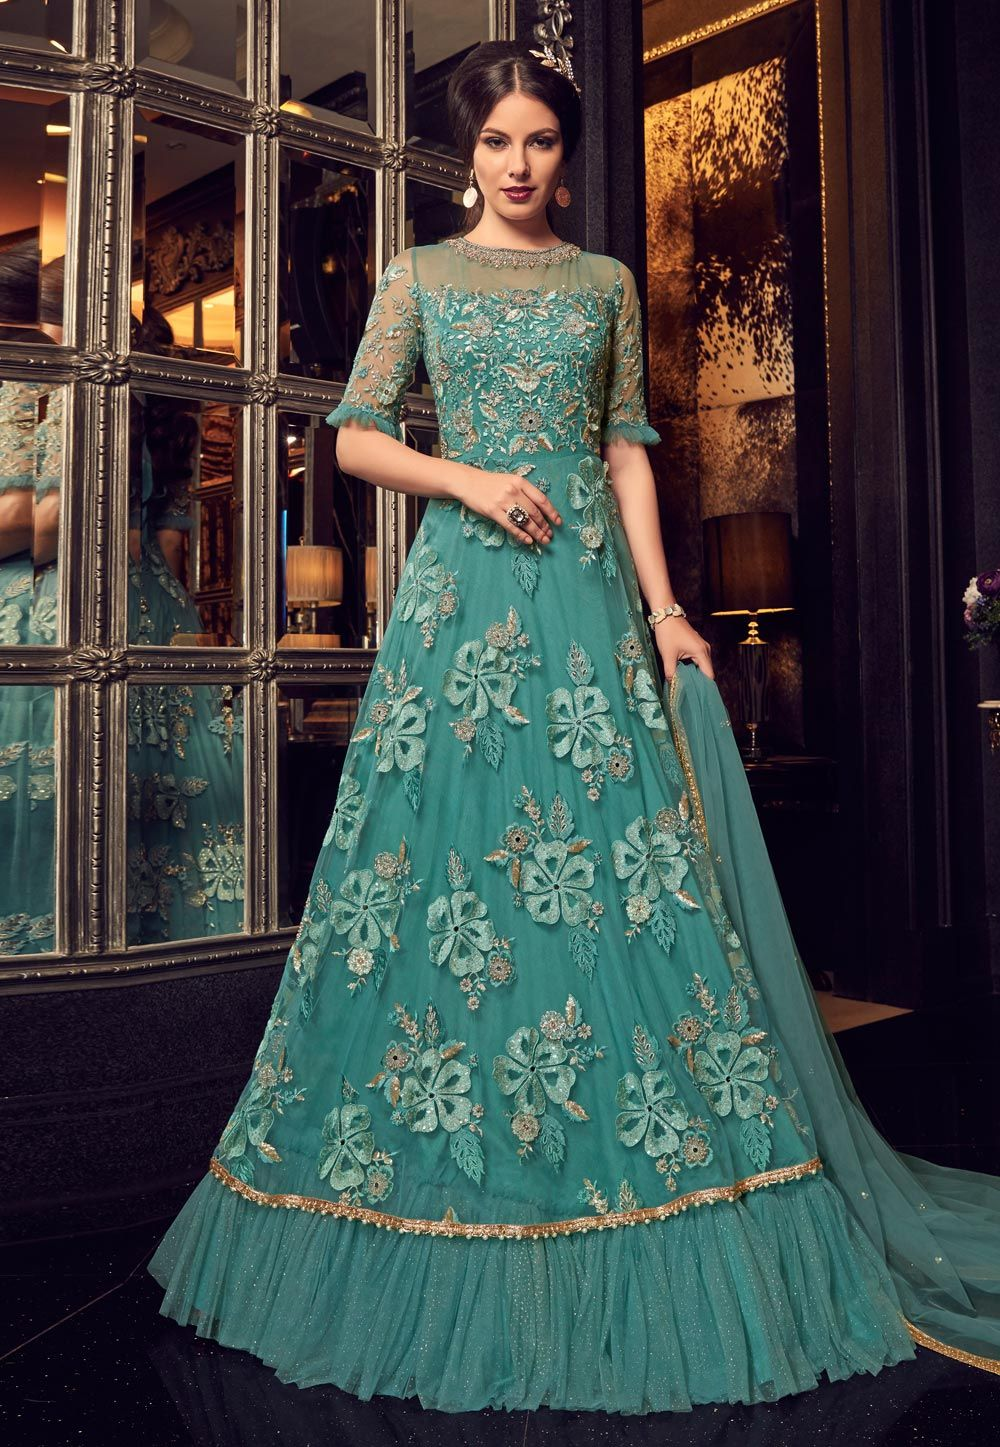 ac1f046541 Buy Sea Green Net Floor Length Anarkali Suit With Frills 153792 online at  lowest price from huge collection of salwar kameez at Indianclothstore.com.